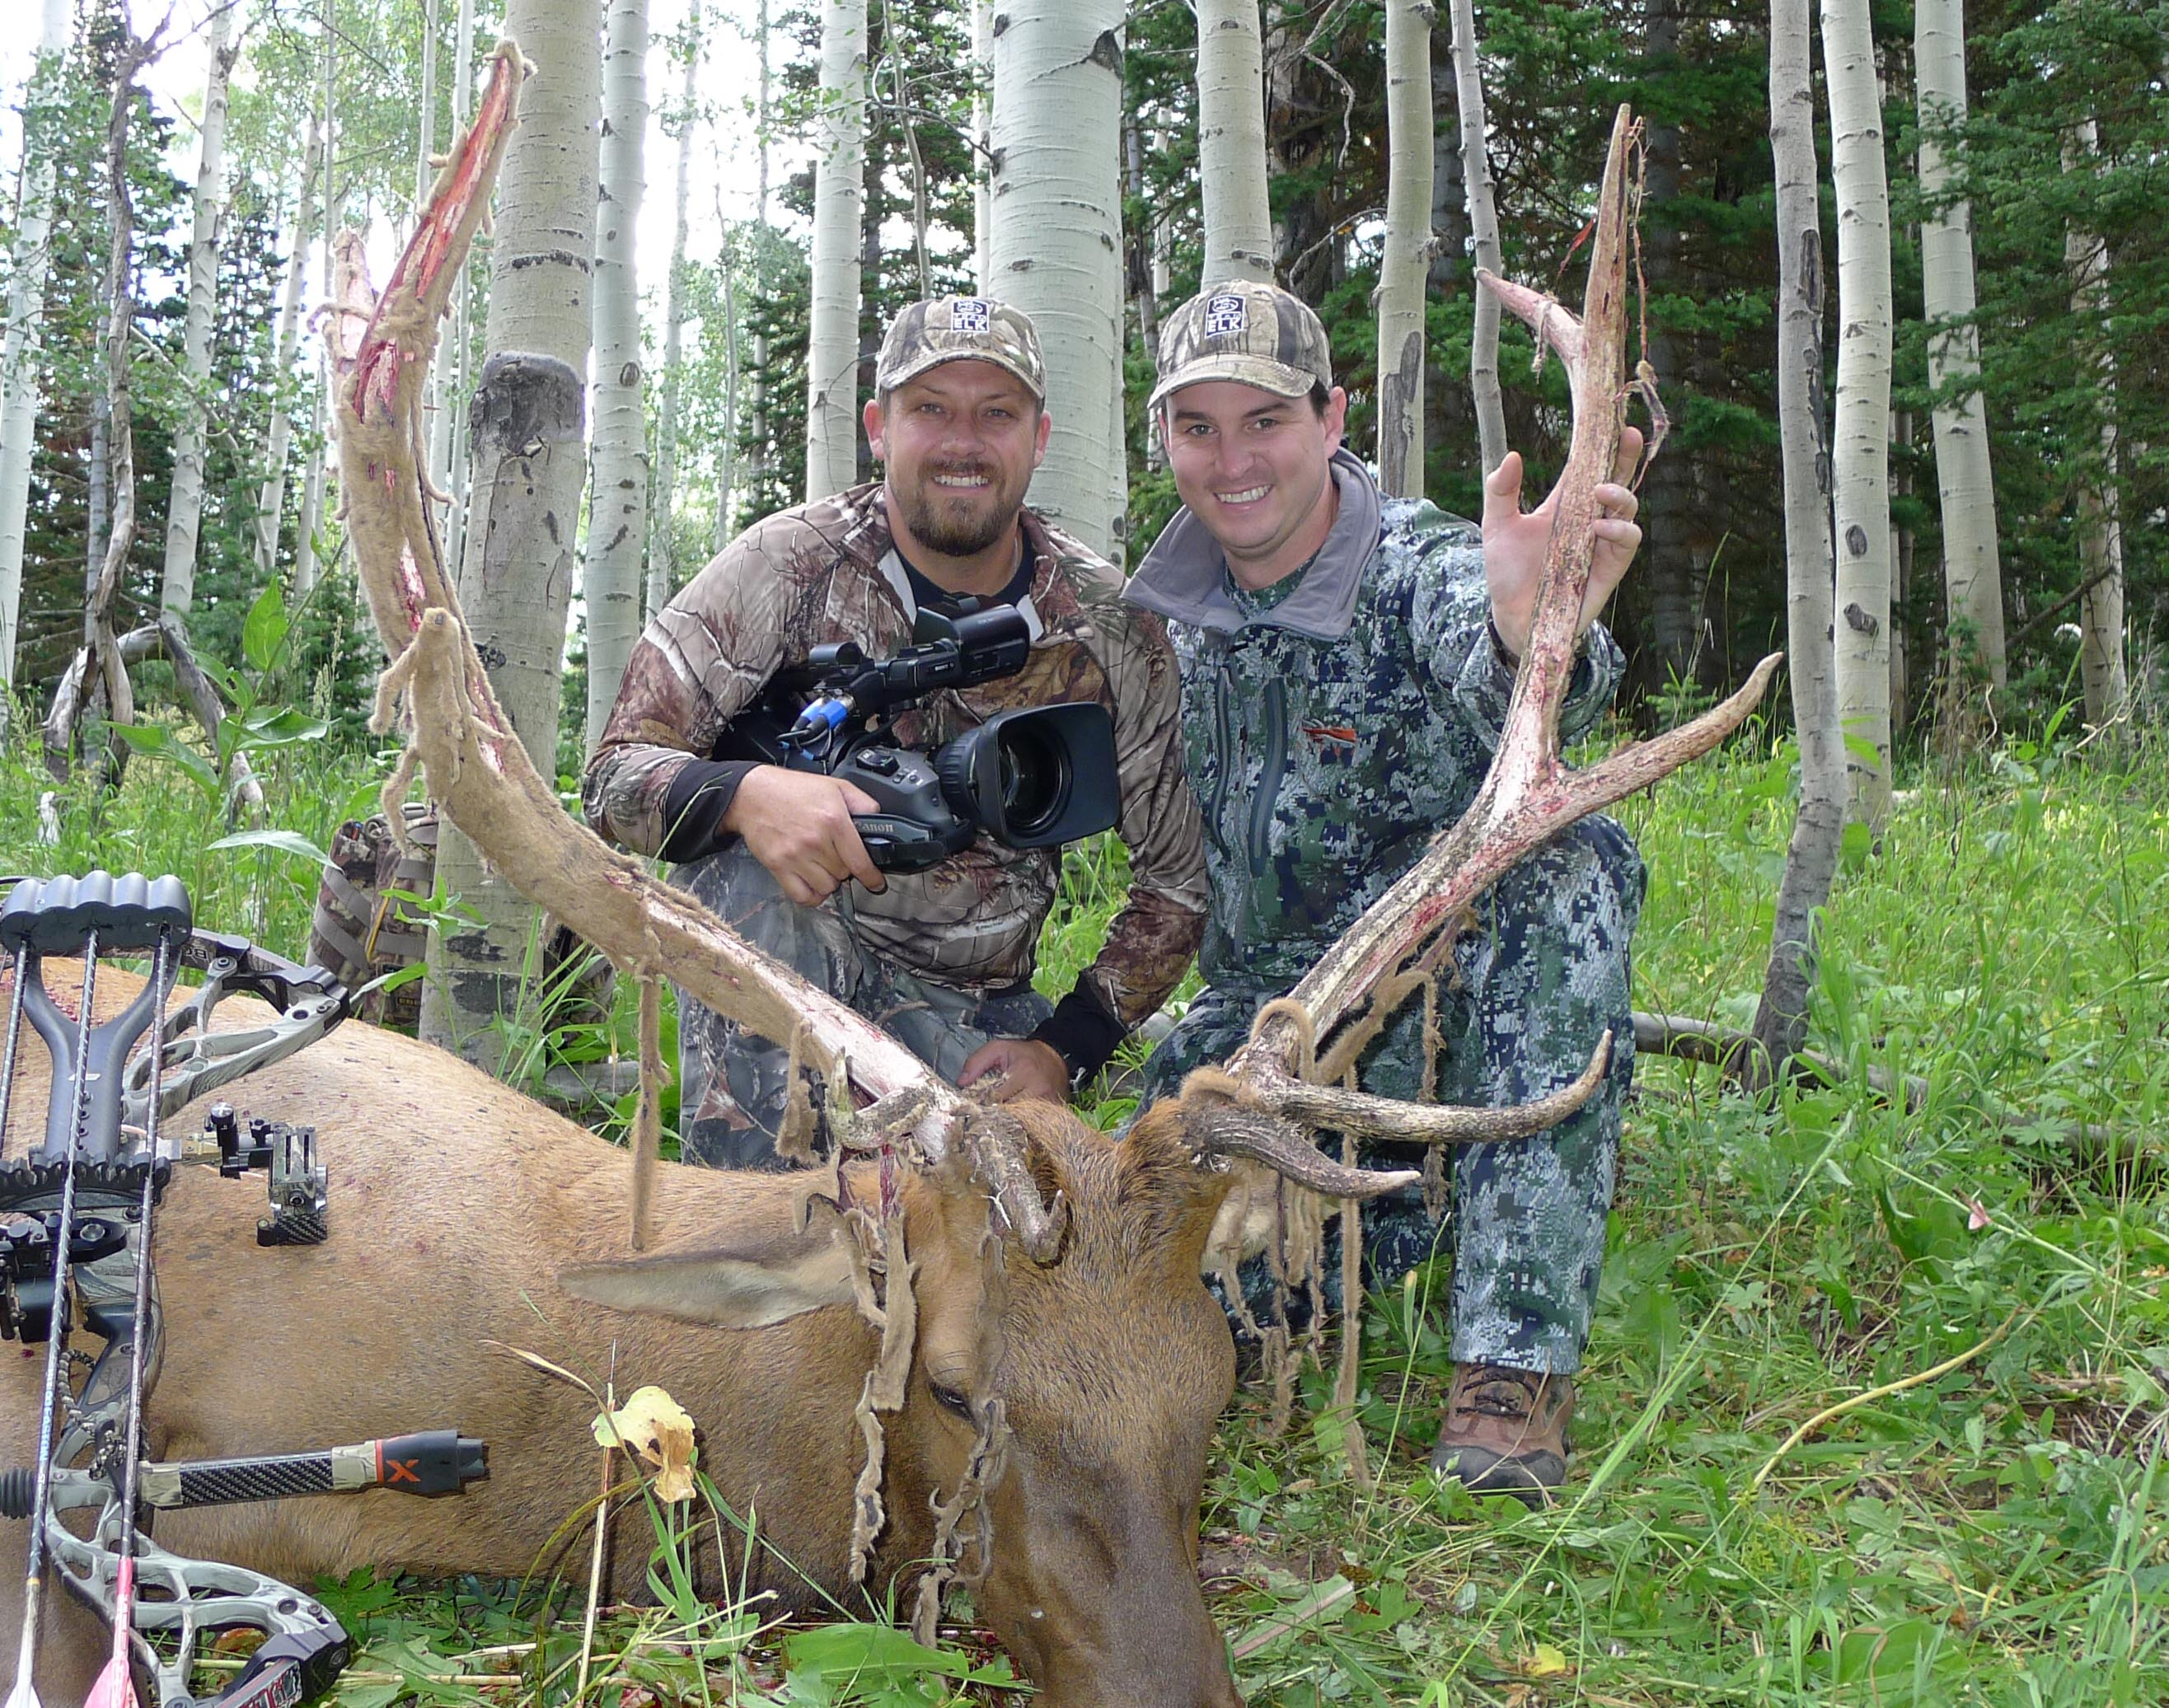 Brandon Bates, left, has experienced the highs and lows of chasing whitetails and elk throughout the country.